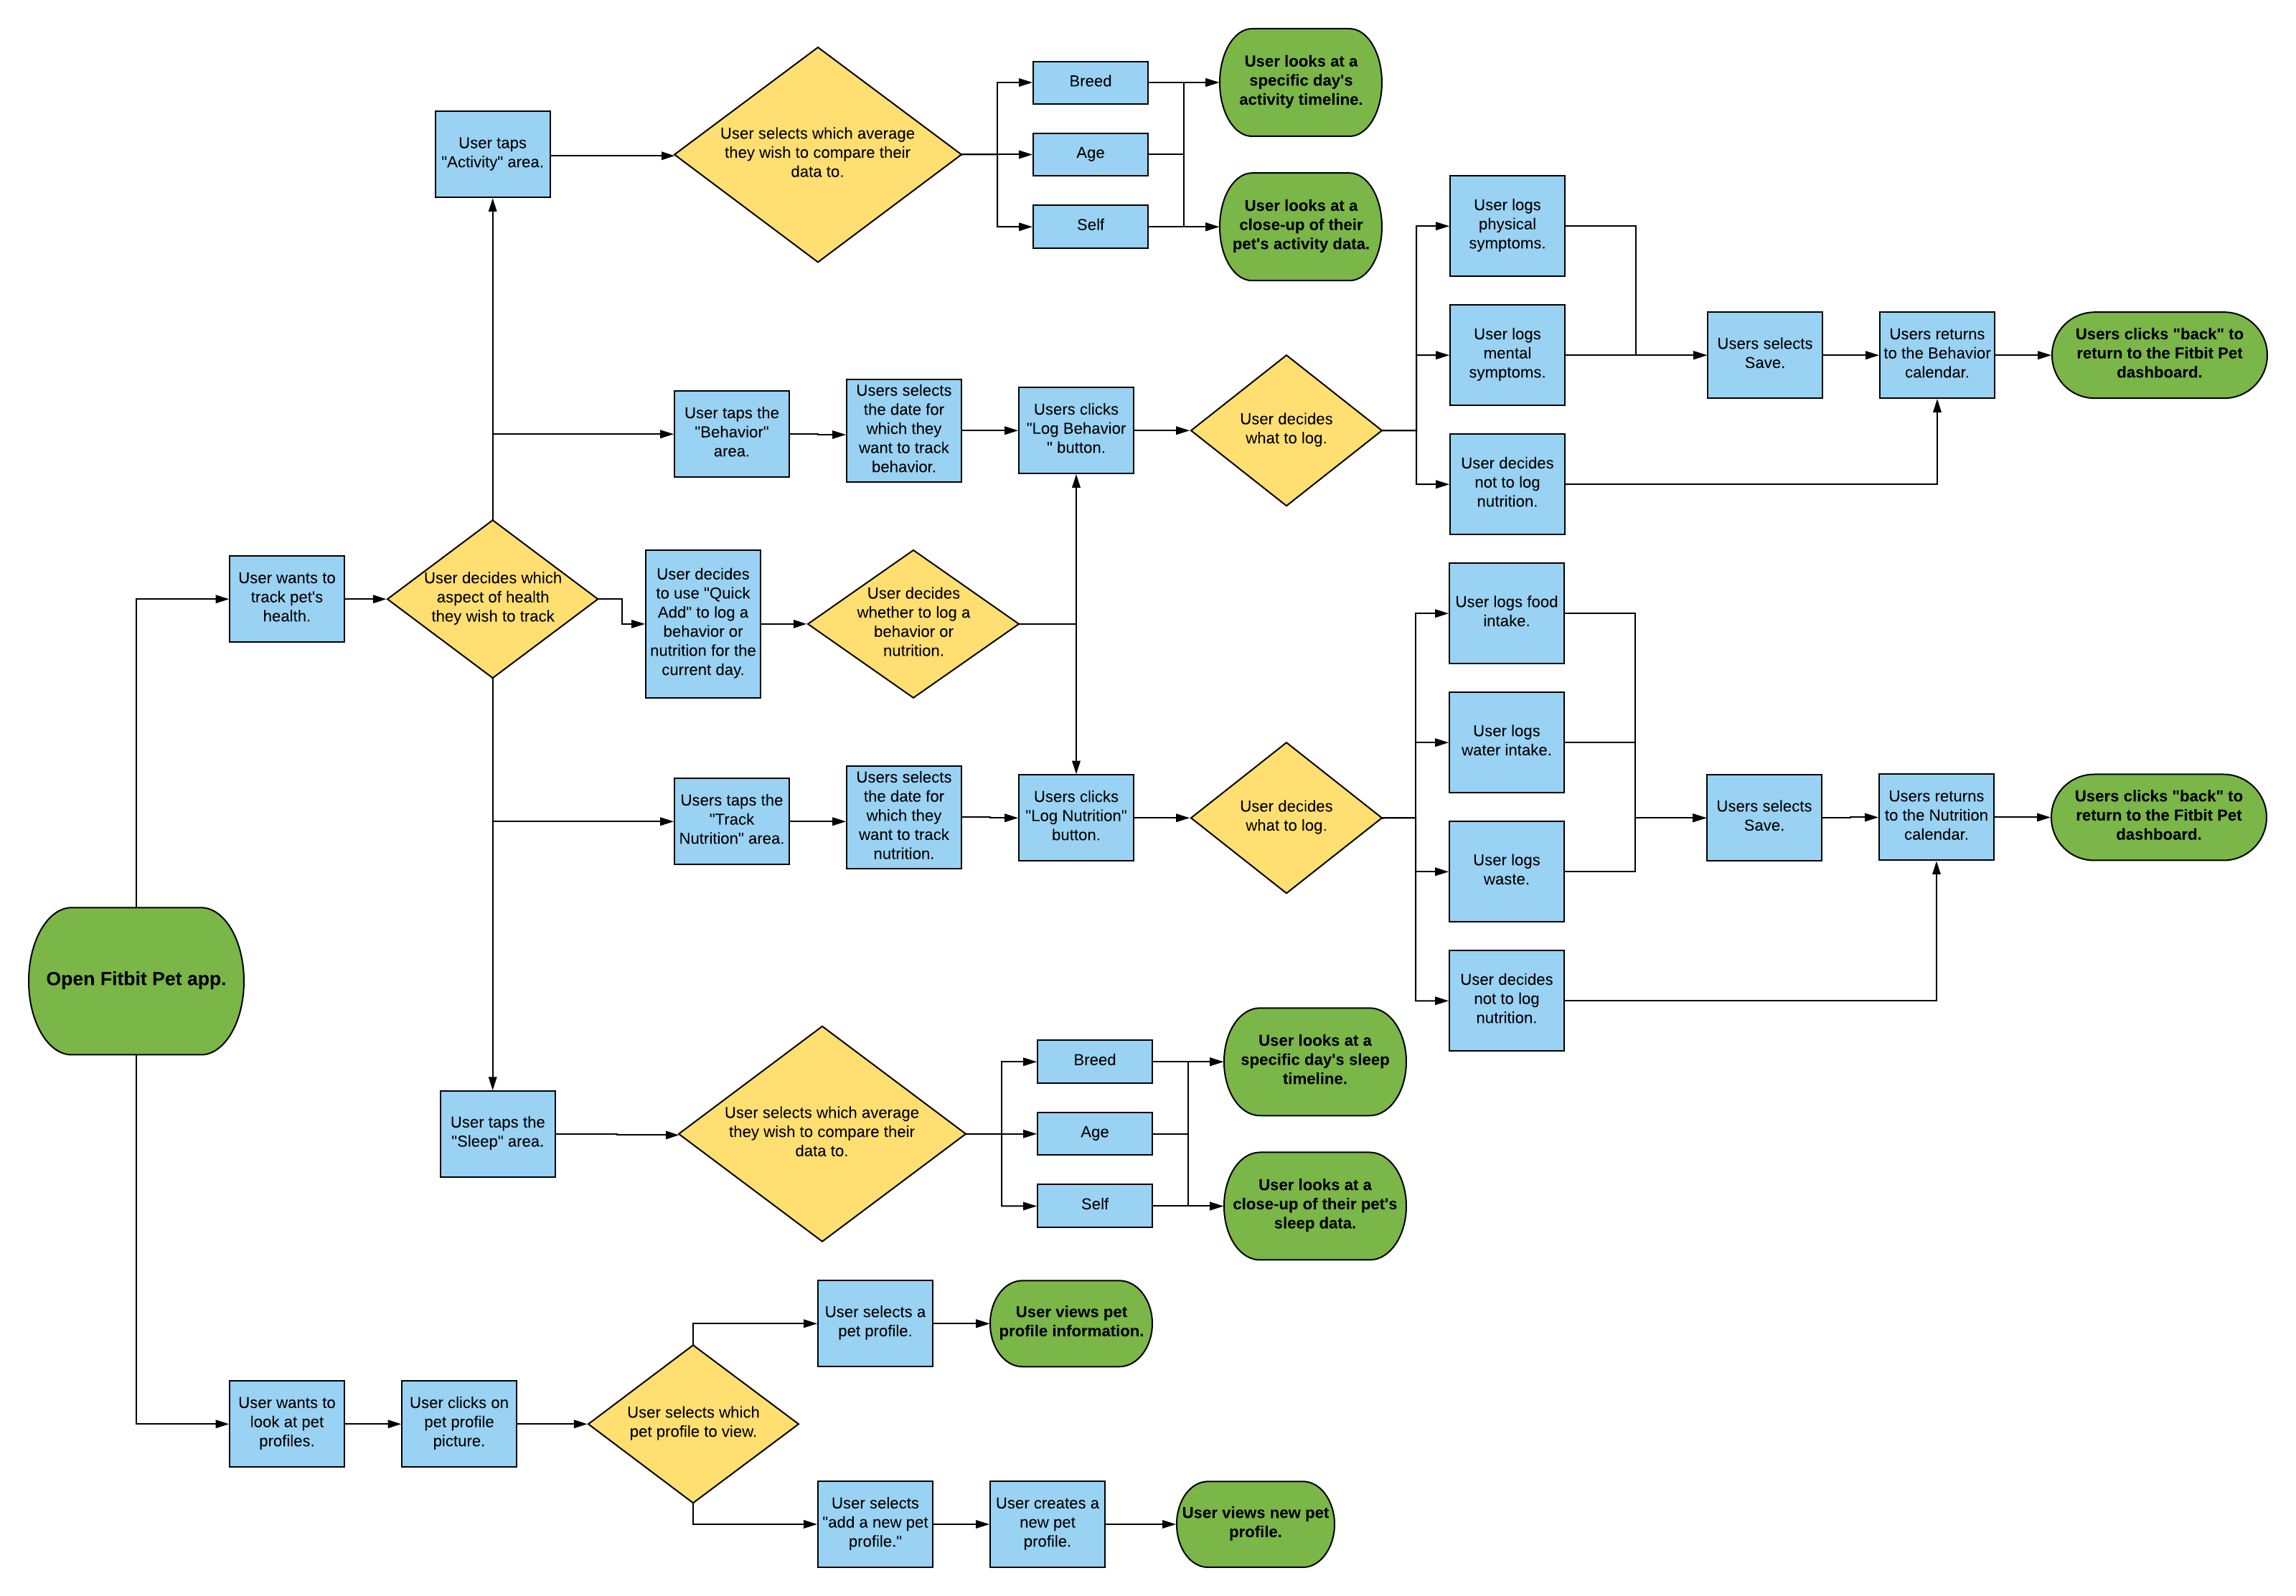 A flowchart illustrating the user journey of a person using the Fitbit Pet app.